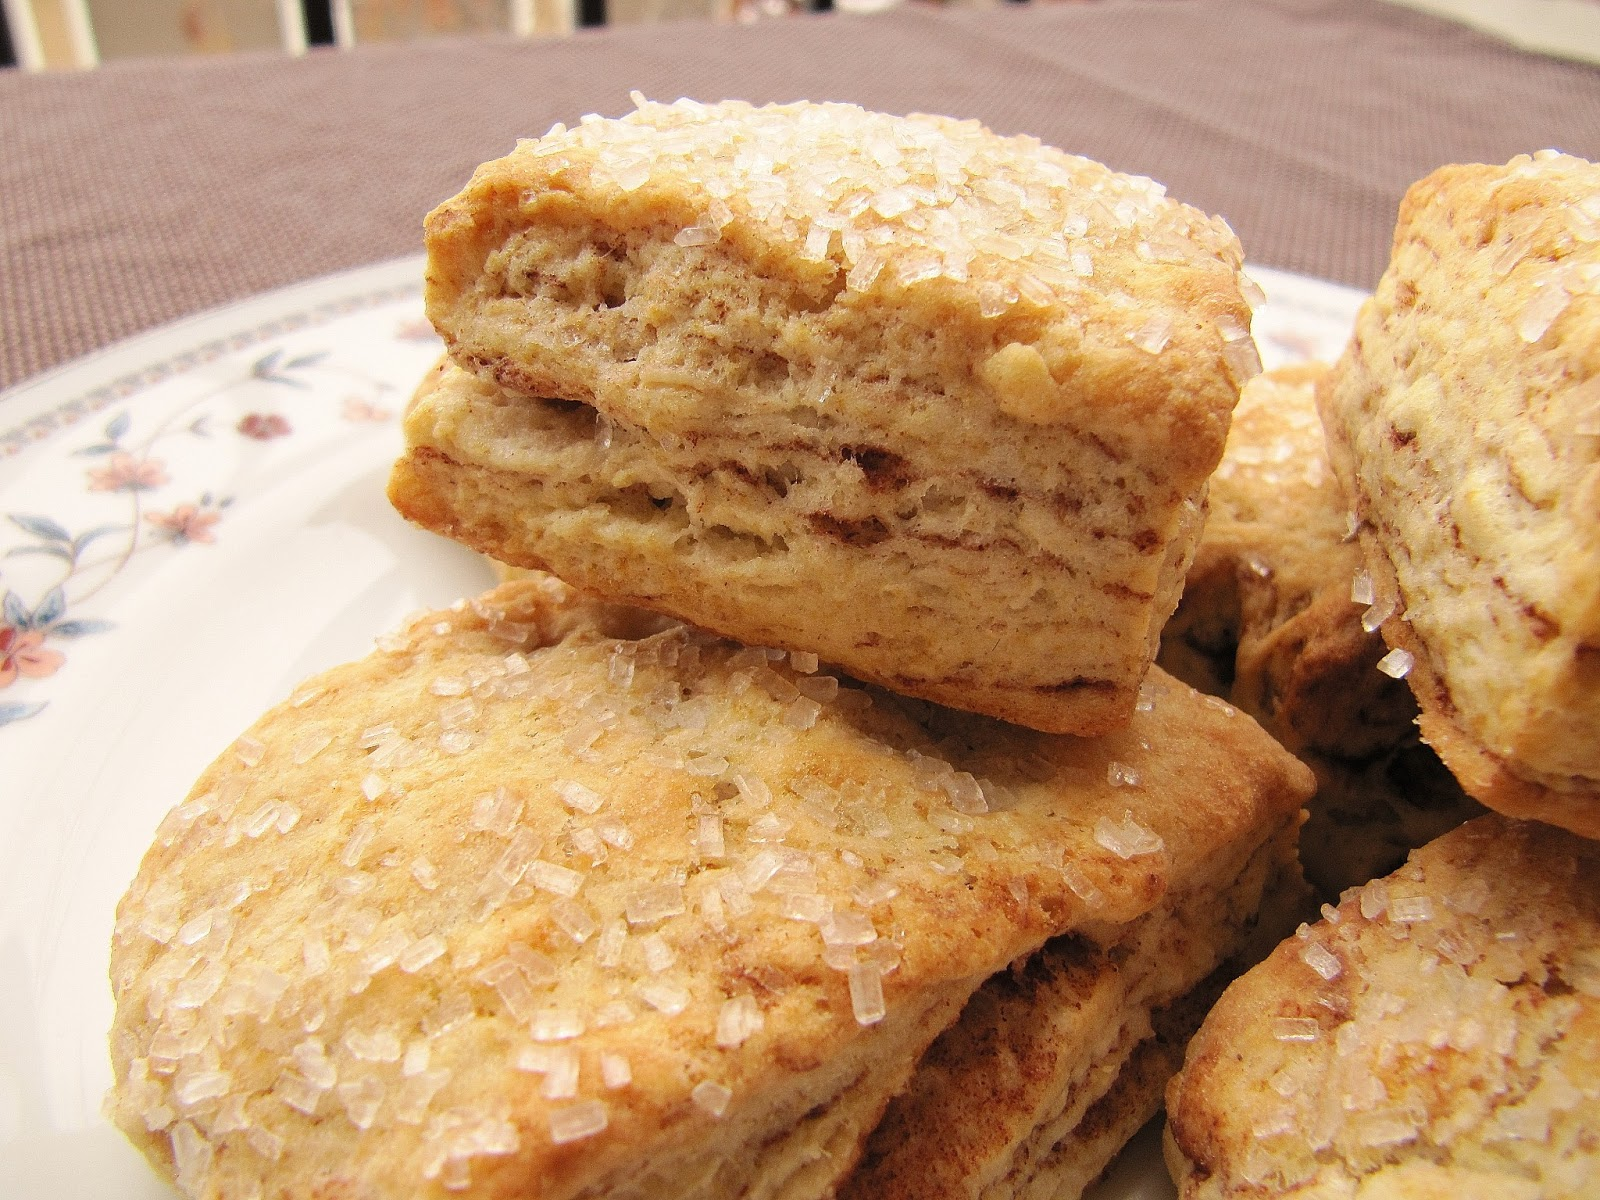 Flaky Cinnamon Layered Biscuits (adapted from Salad In a Jar )